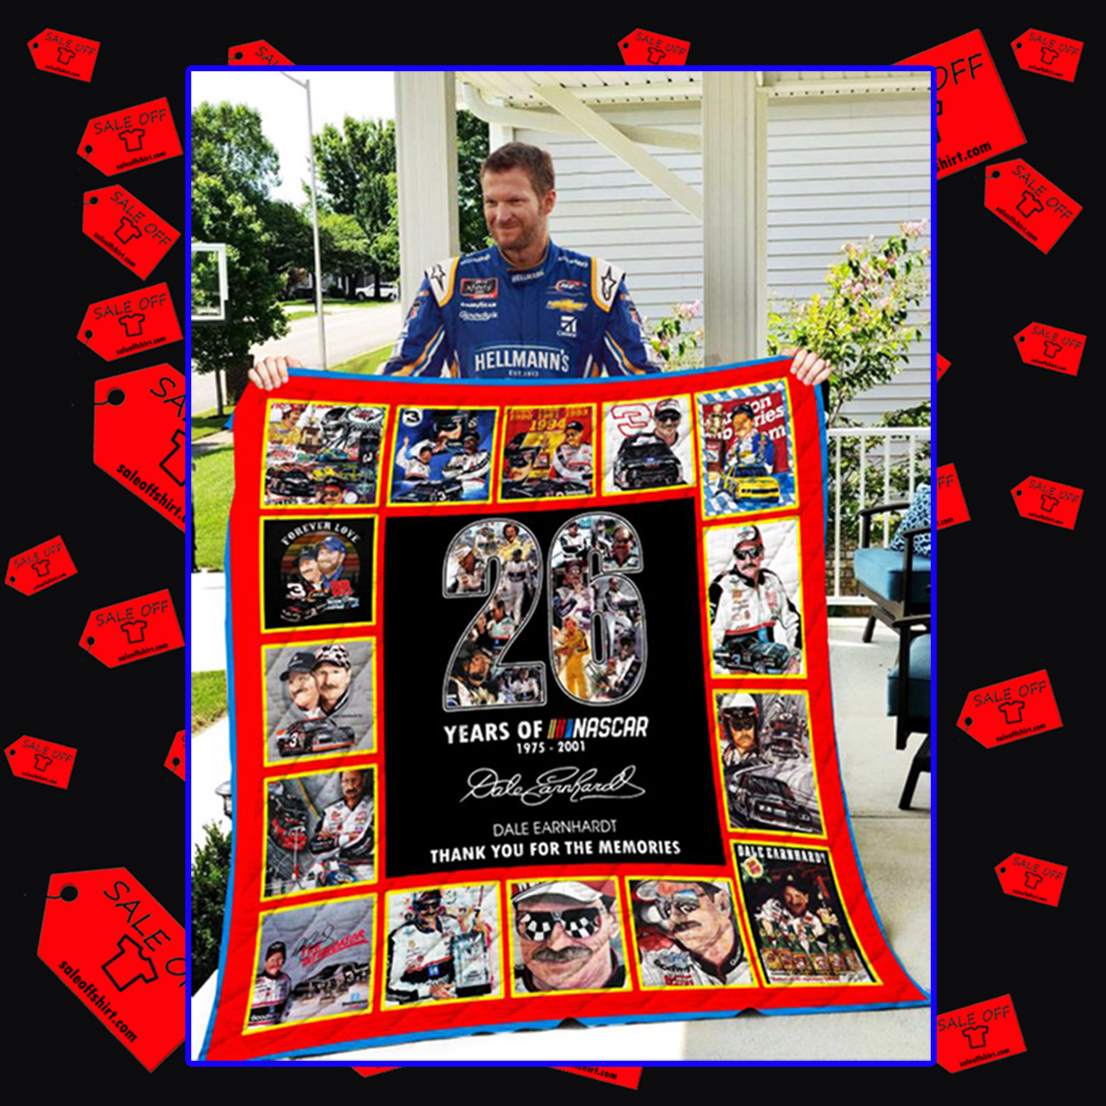 26 years of Nascar thank you for the memories quilt blanket - queen